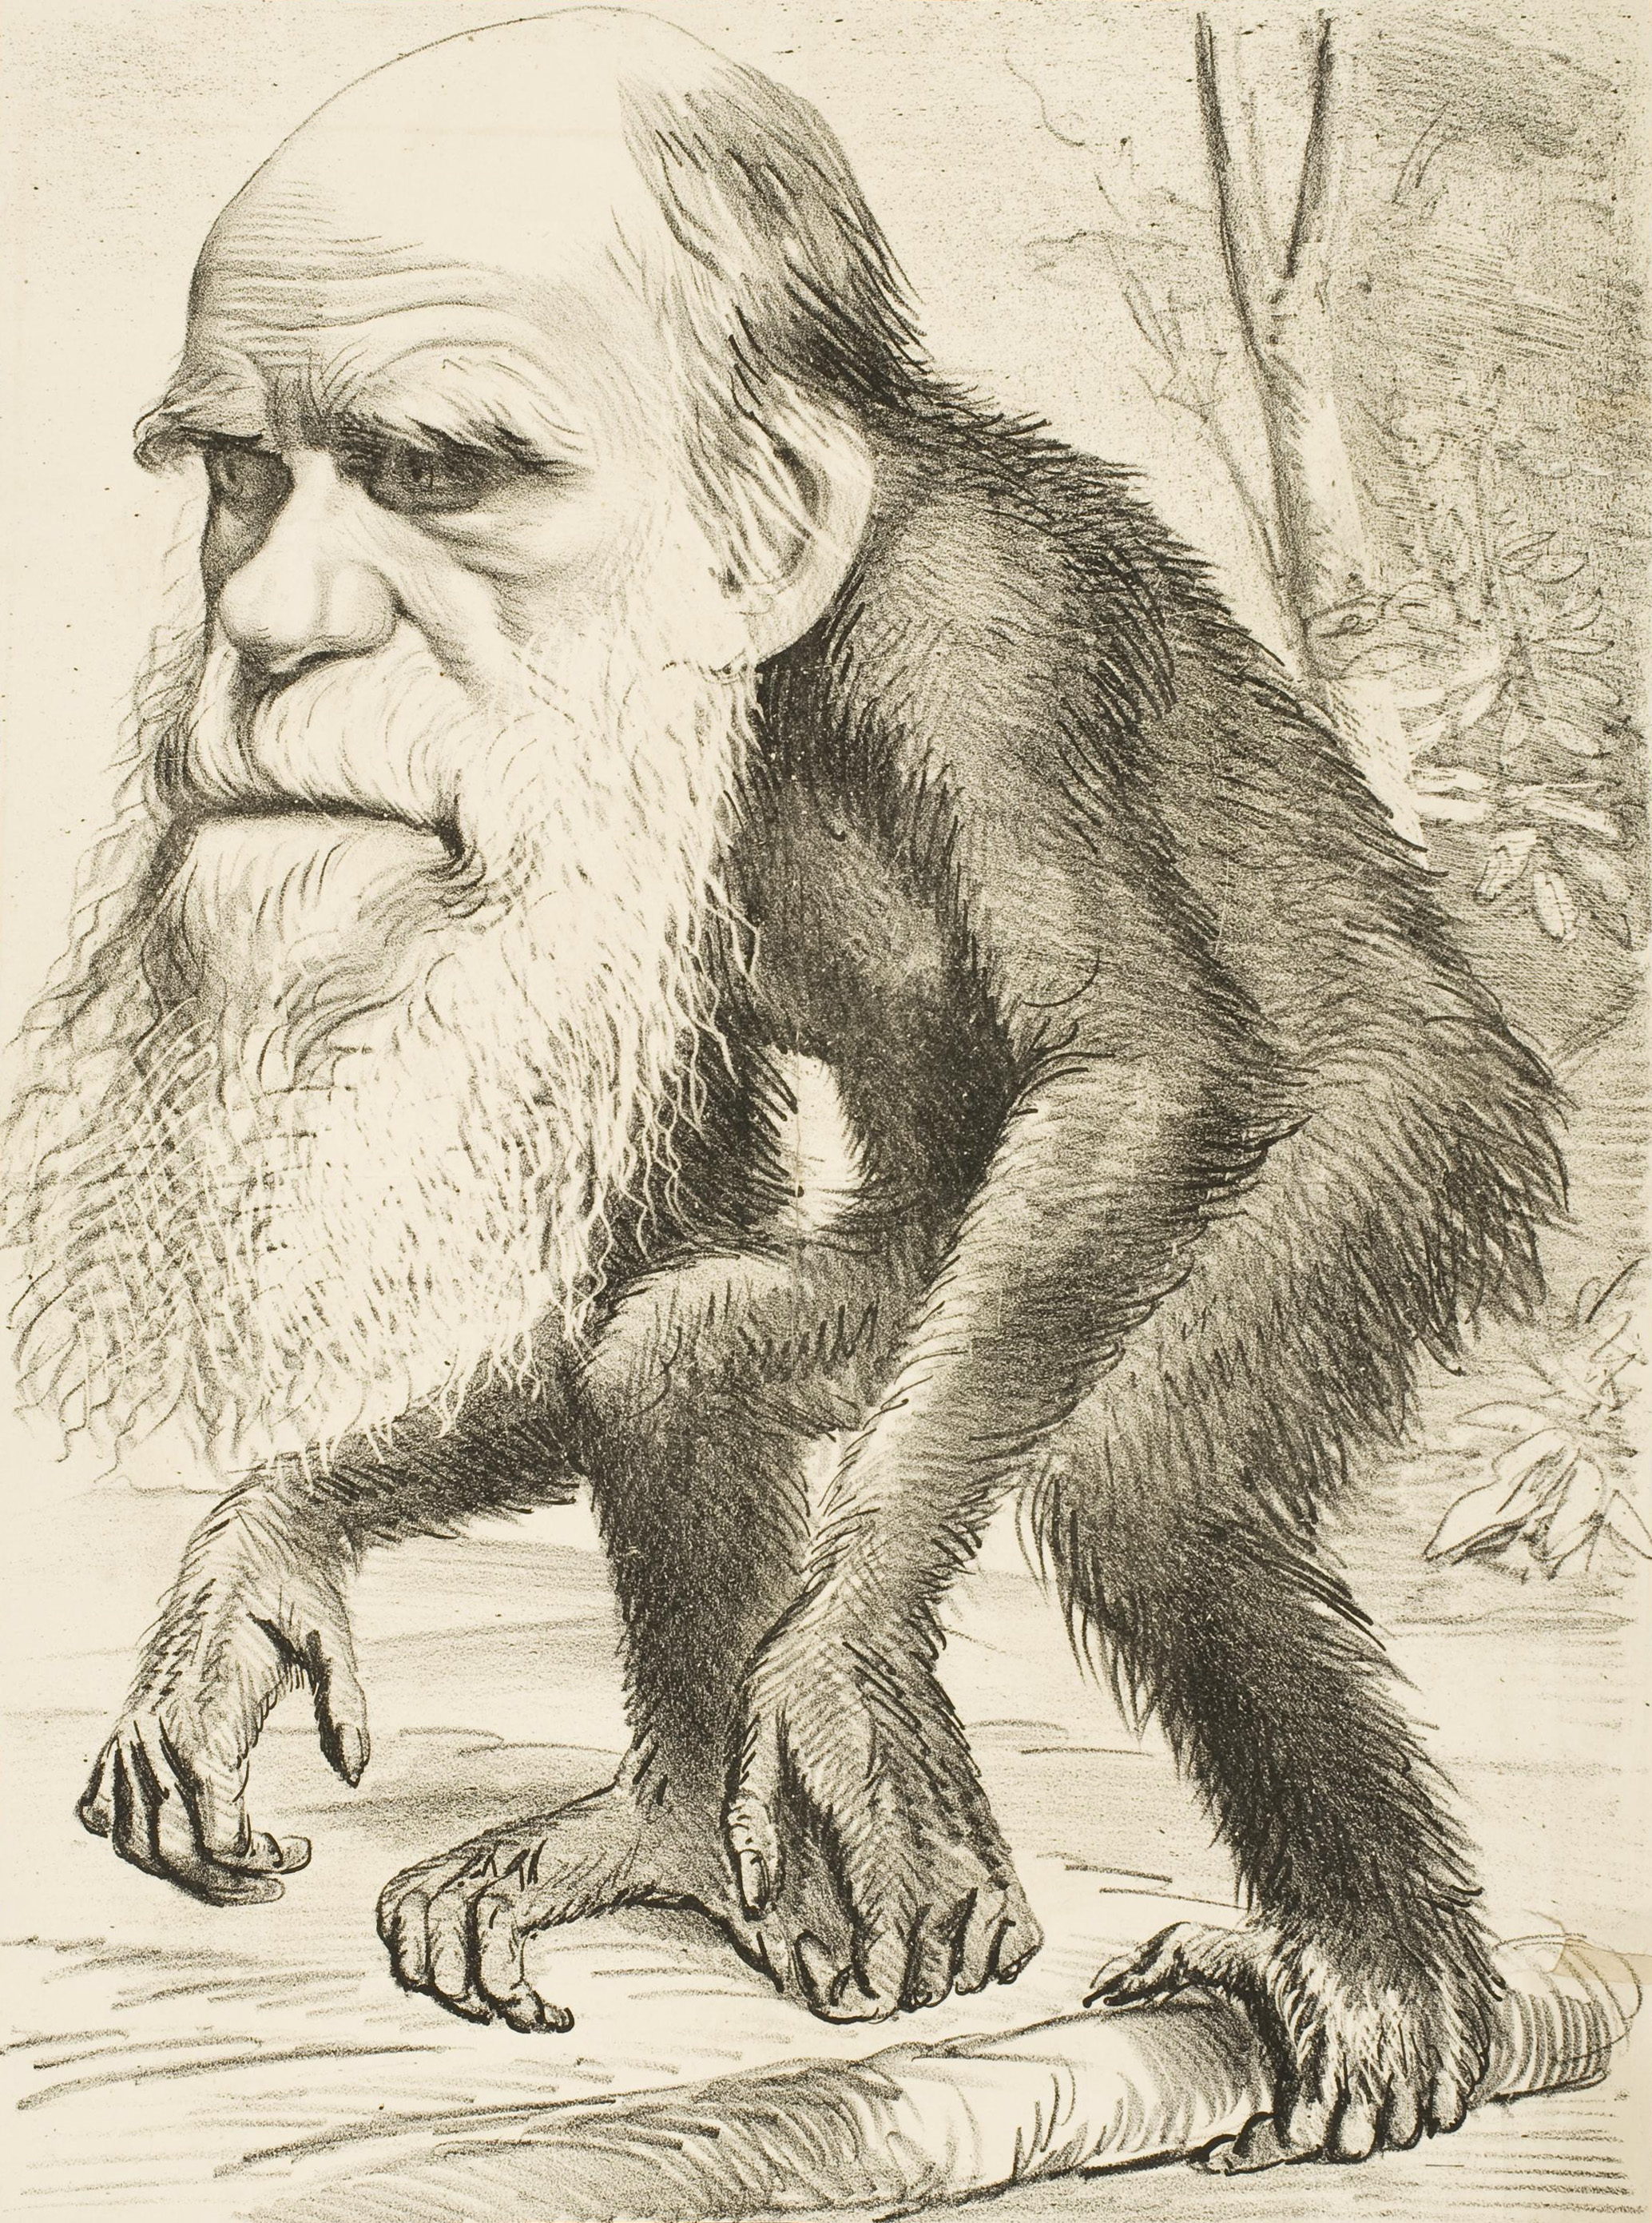 Evolution Editorial cartoon depicting Charles Darwin as an ape